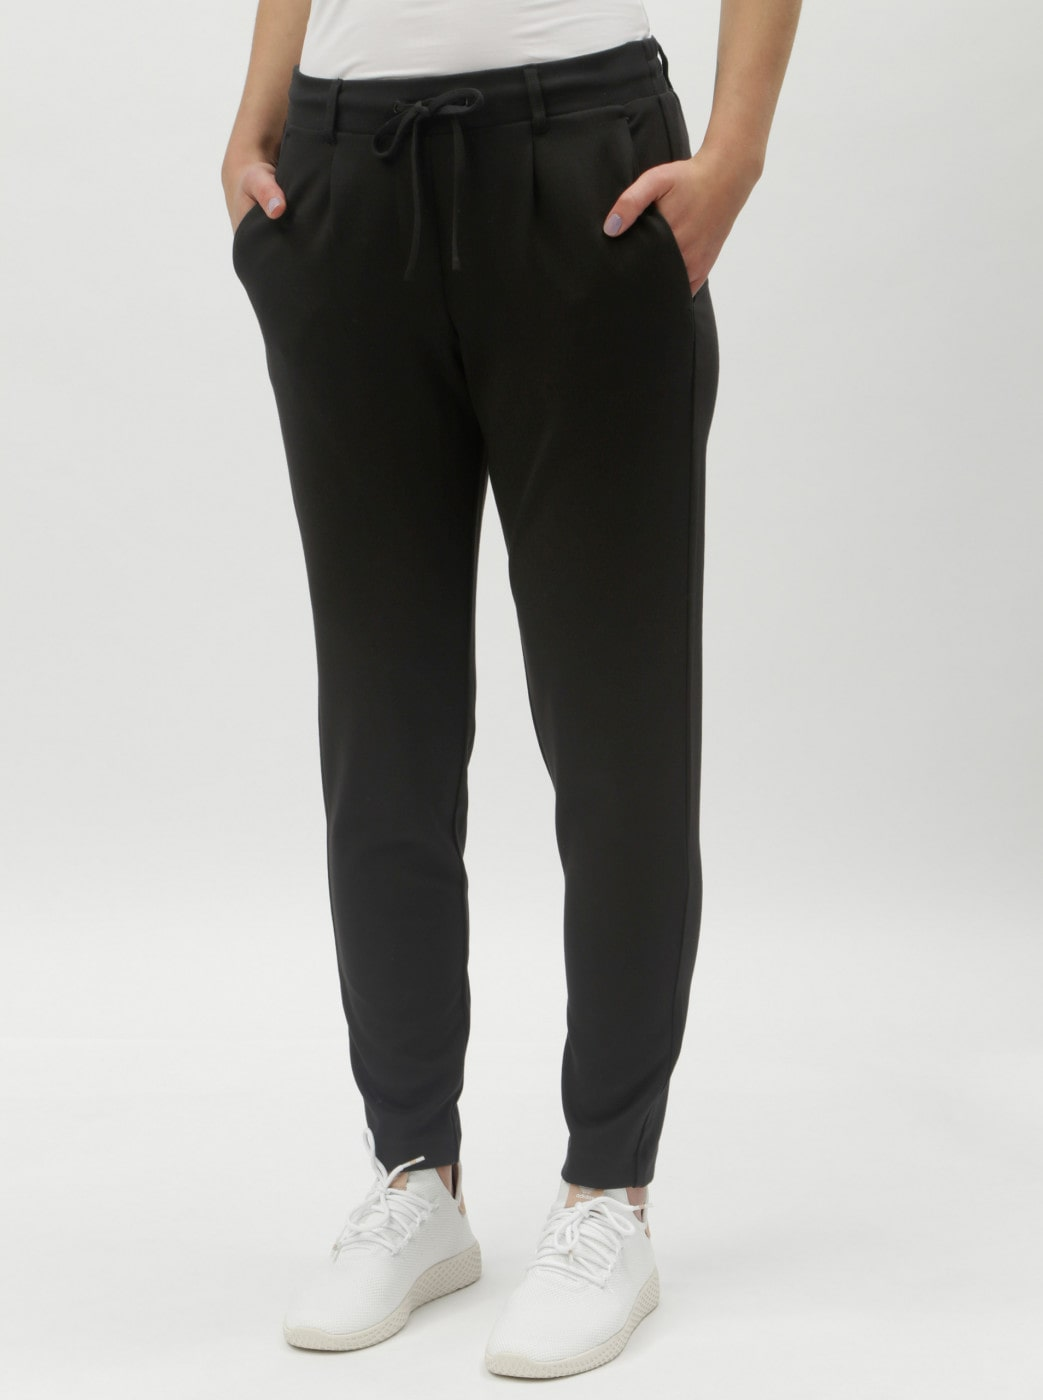 Tom Tailor's Black Women's Pants with Elastication